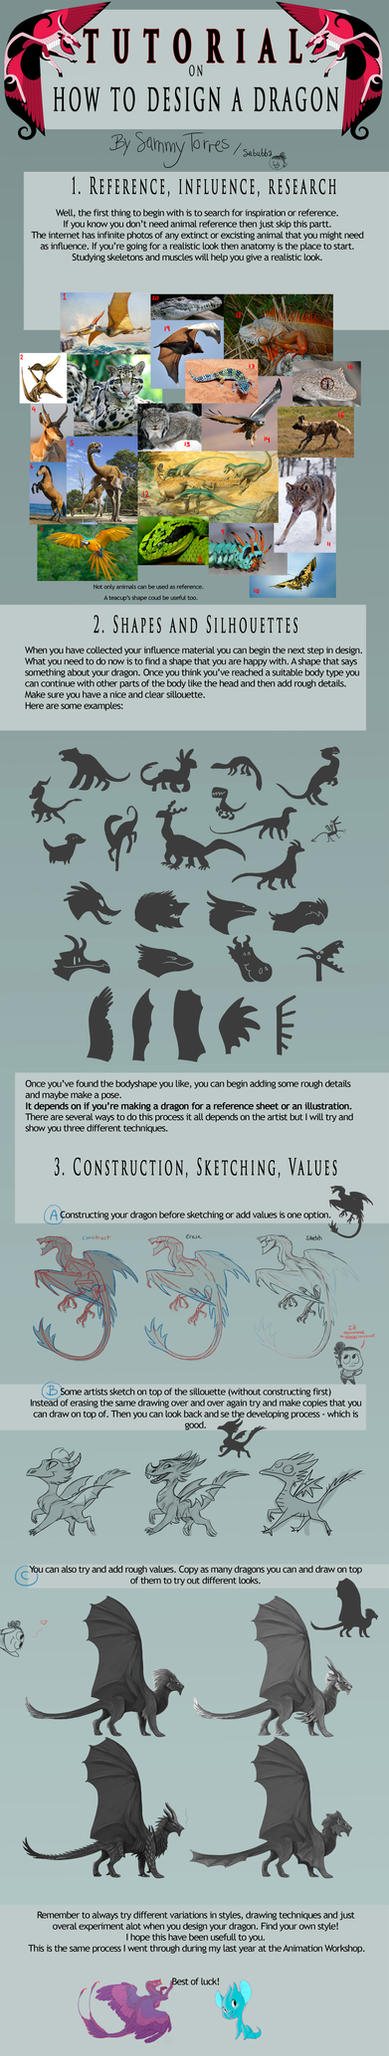 TUTORIAL: How to Design a Dragon by SammyTorres